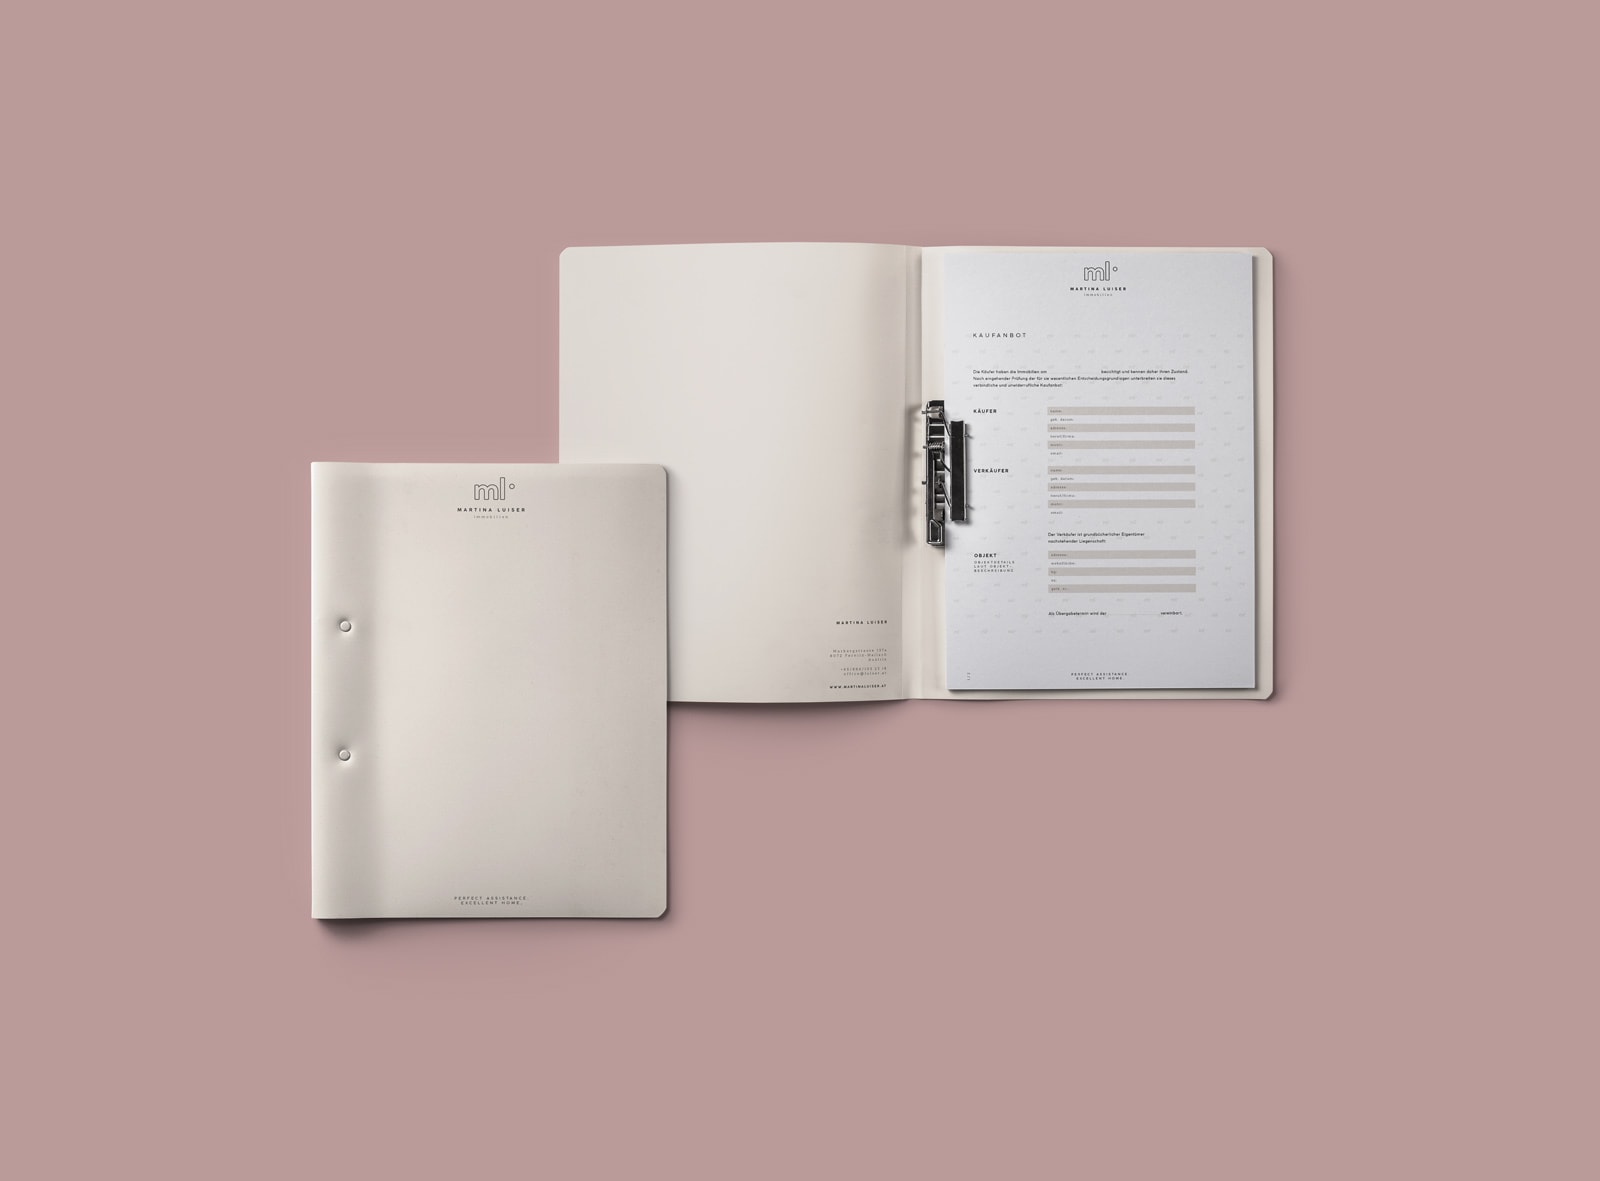 ML-Basic-Stationery-Branding-Vol17